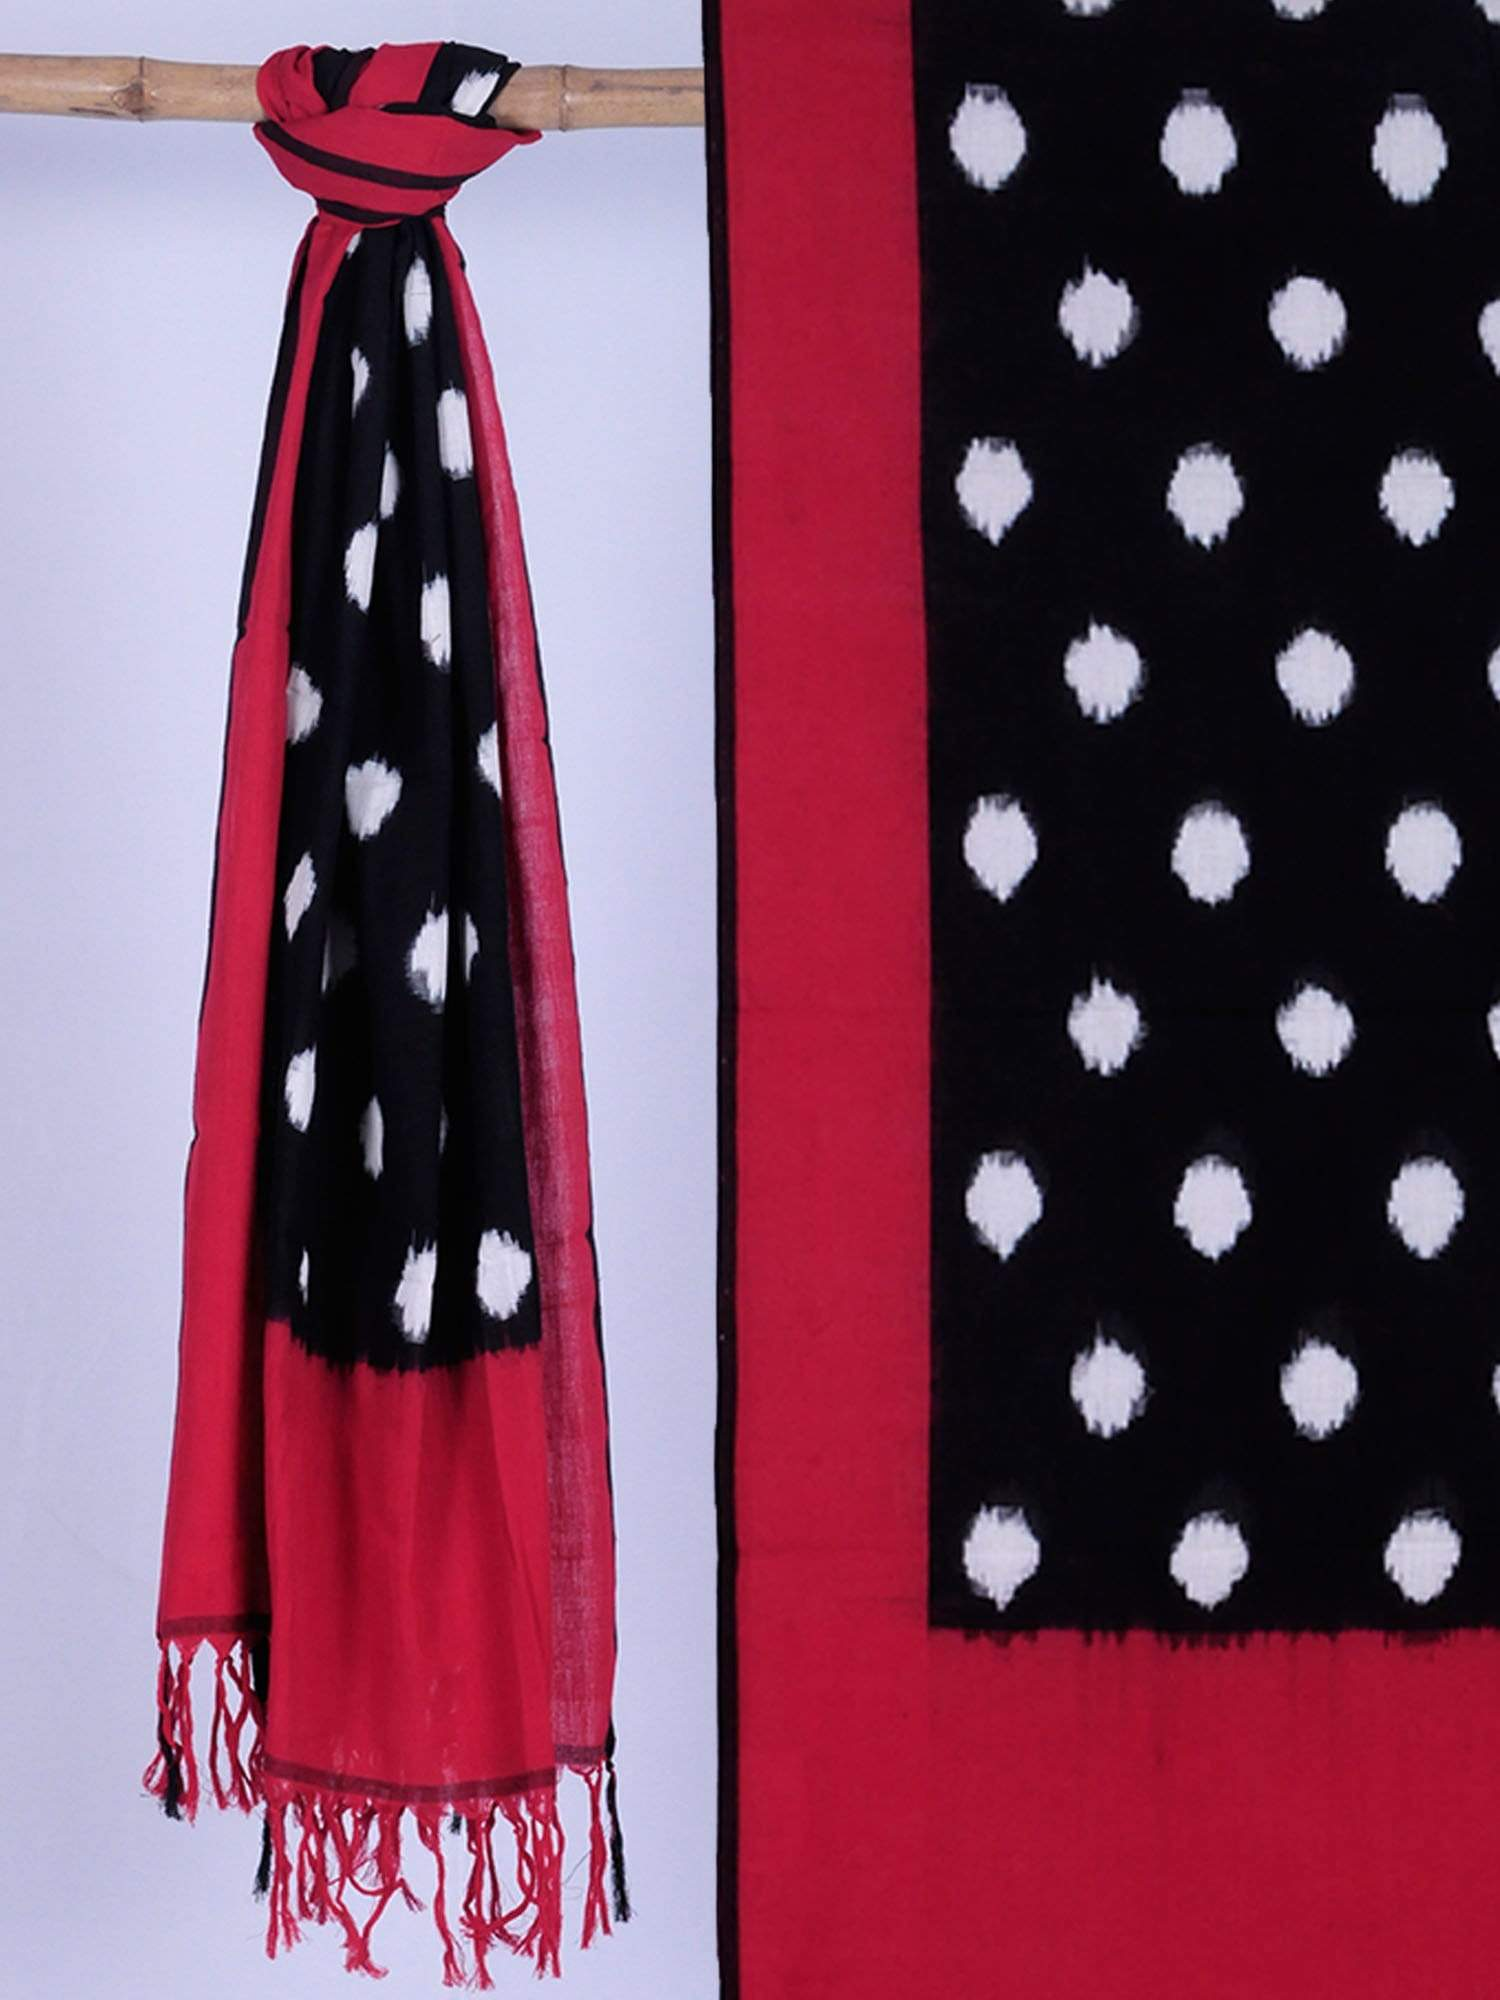 Red and Black Pochampally Ikat Cotton Handloom Dupatta with Polka Dots Design ds1094